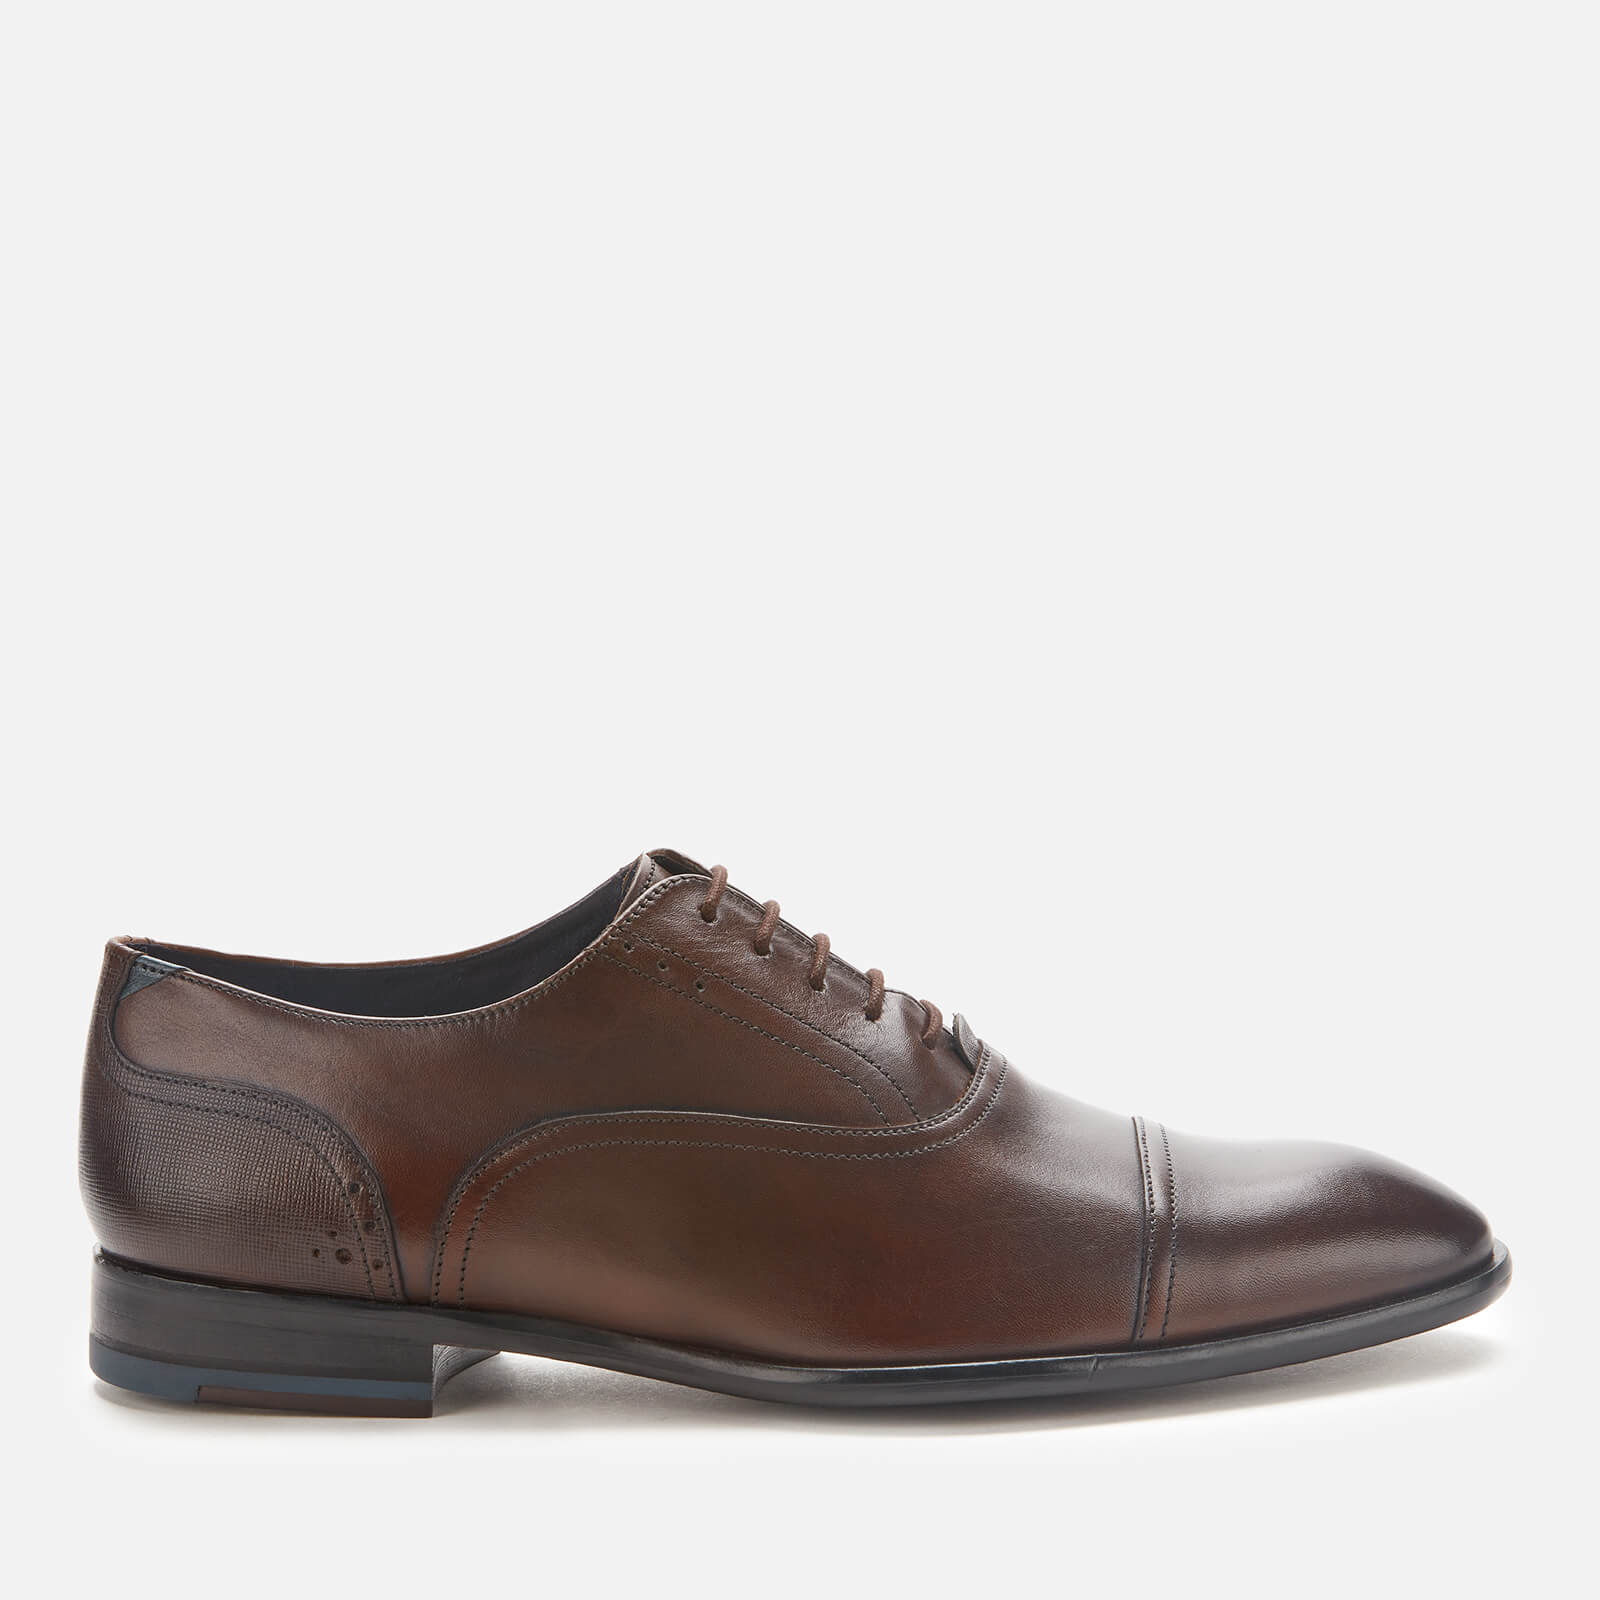 Ted Baker Men's Circass Leather Toe Cap